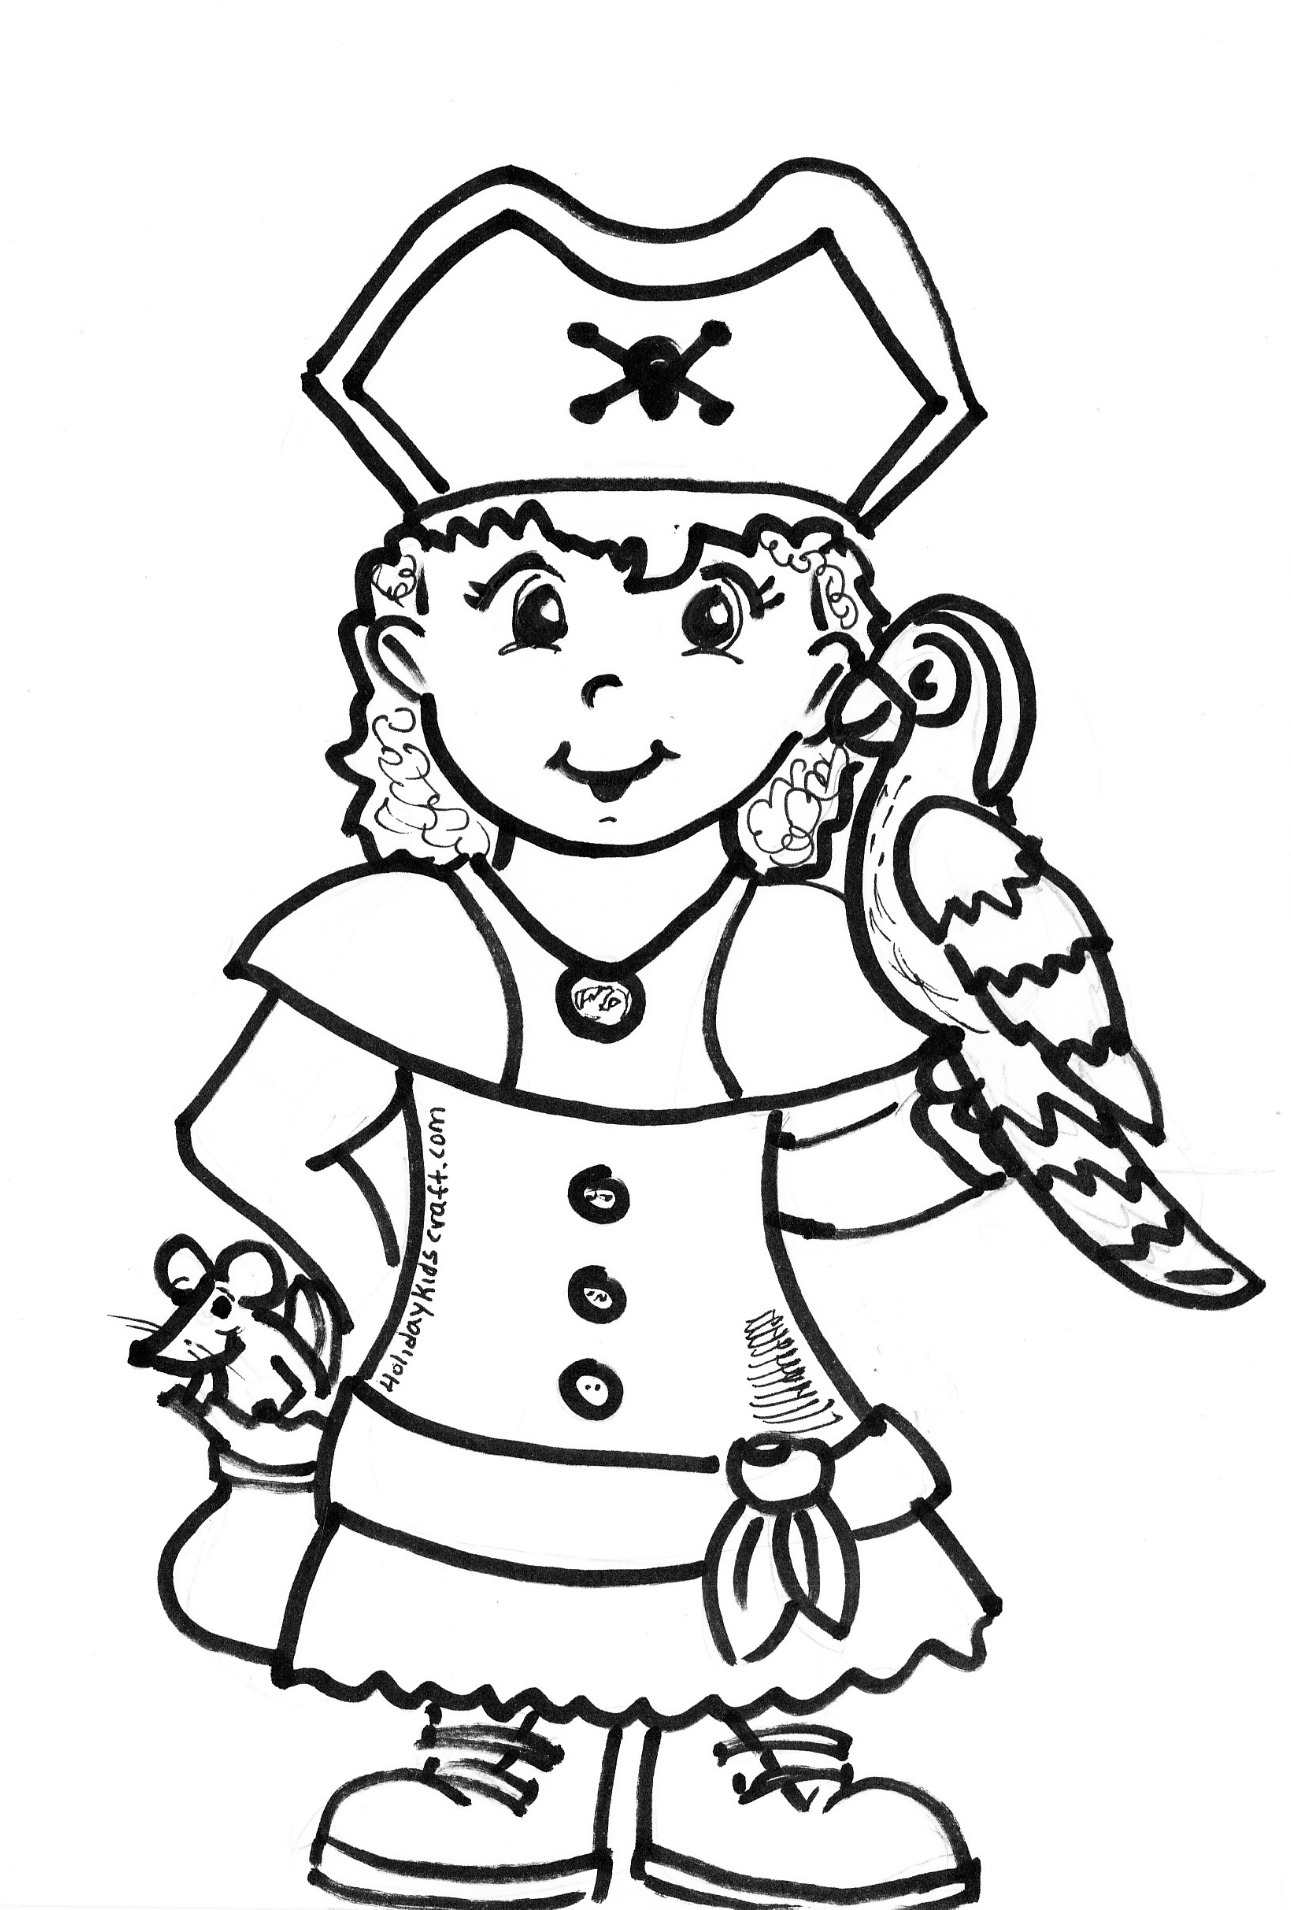 pirate images to color blog creation2 10 pirates coloring pages to print and to color pirate images